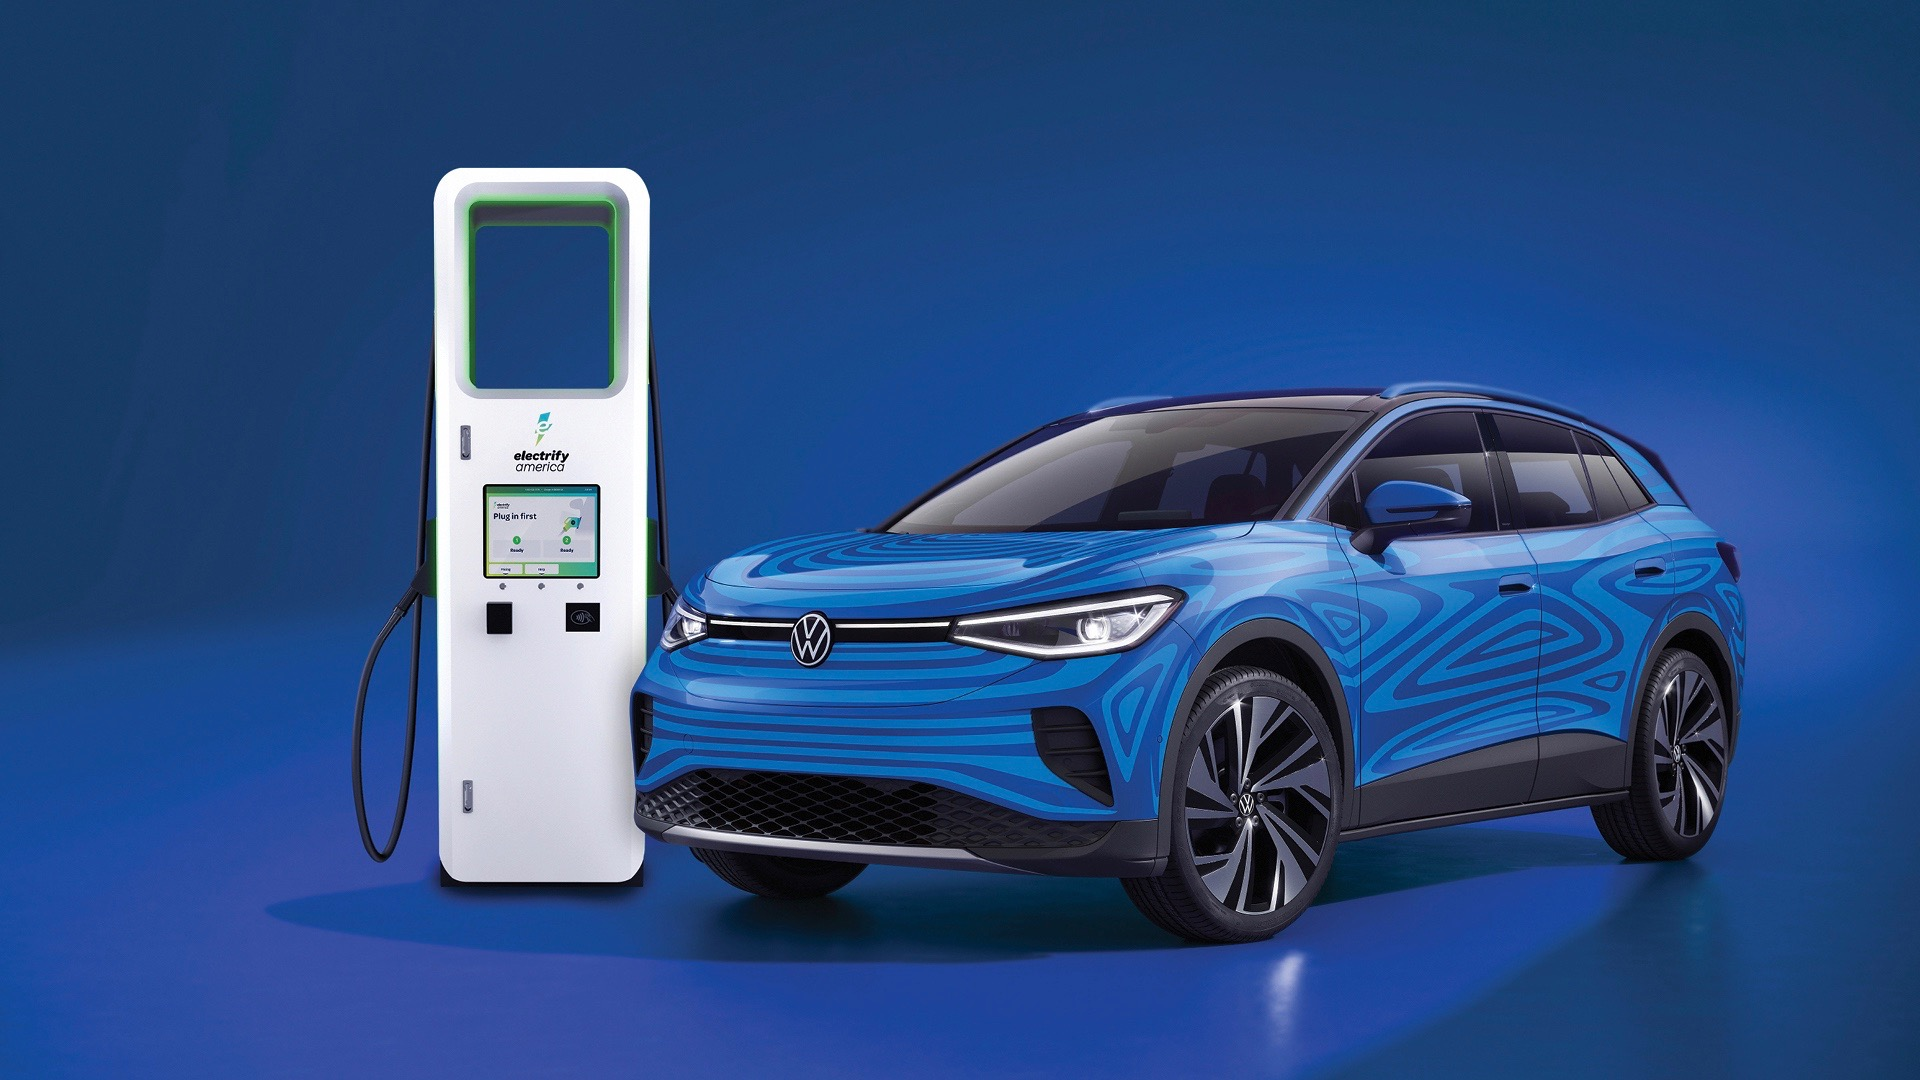 2021 VW ID.4 will include 3 years of unlimited Electrify America fast charging